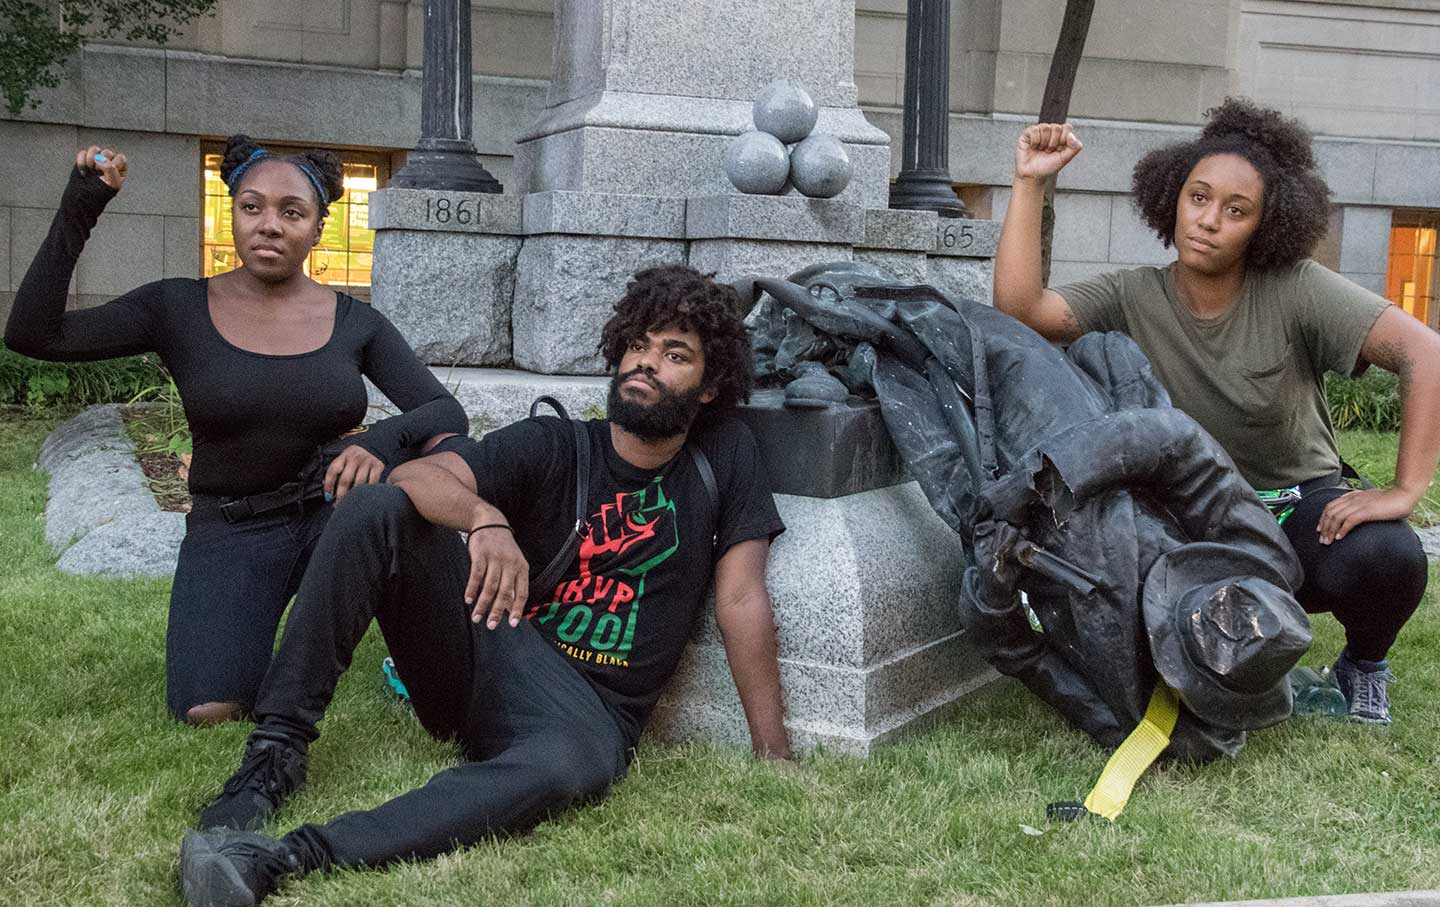 Activists pose after a Confederate statue is toppled in Durham, NC.